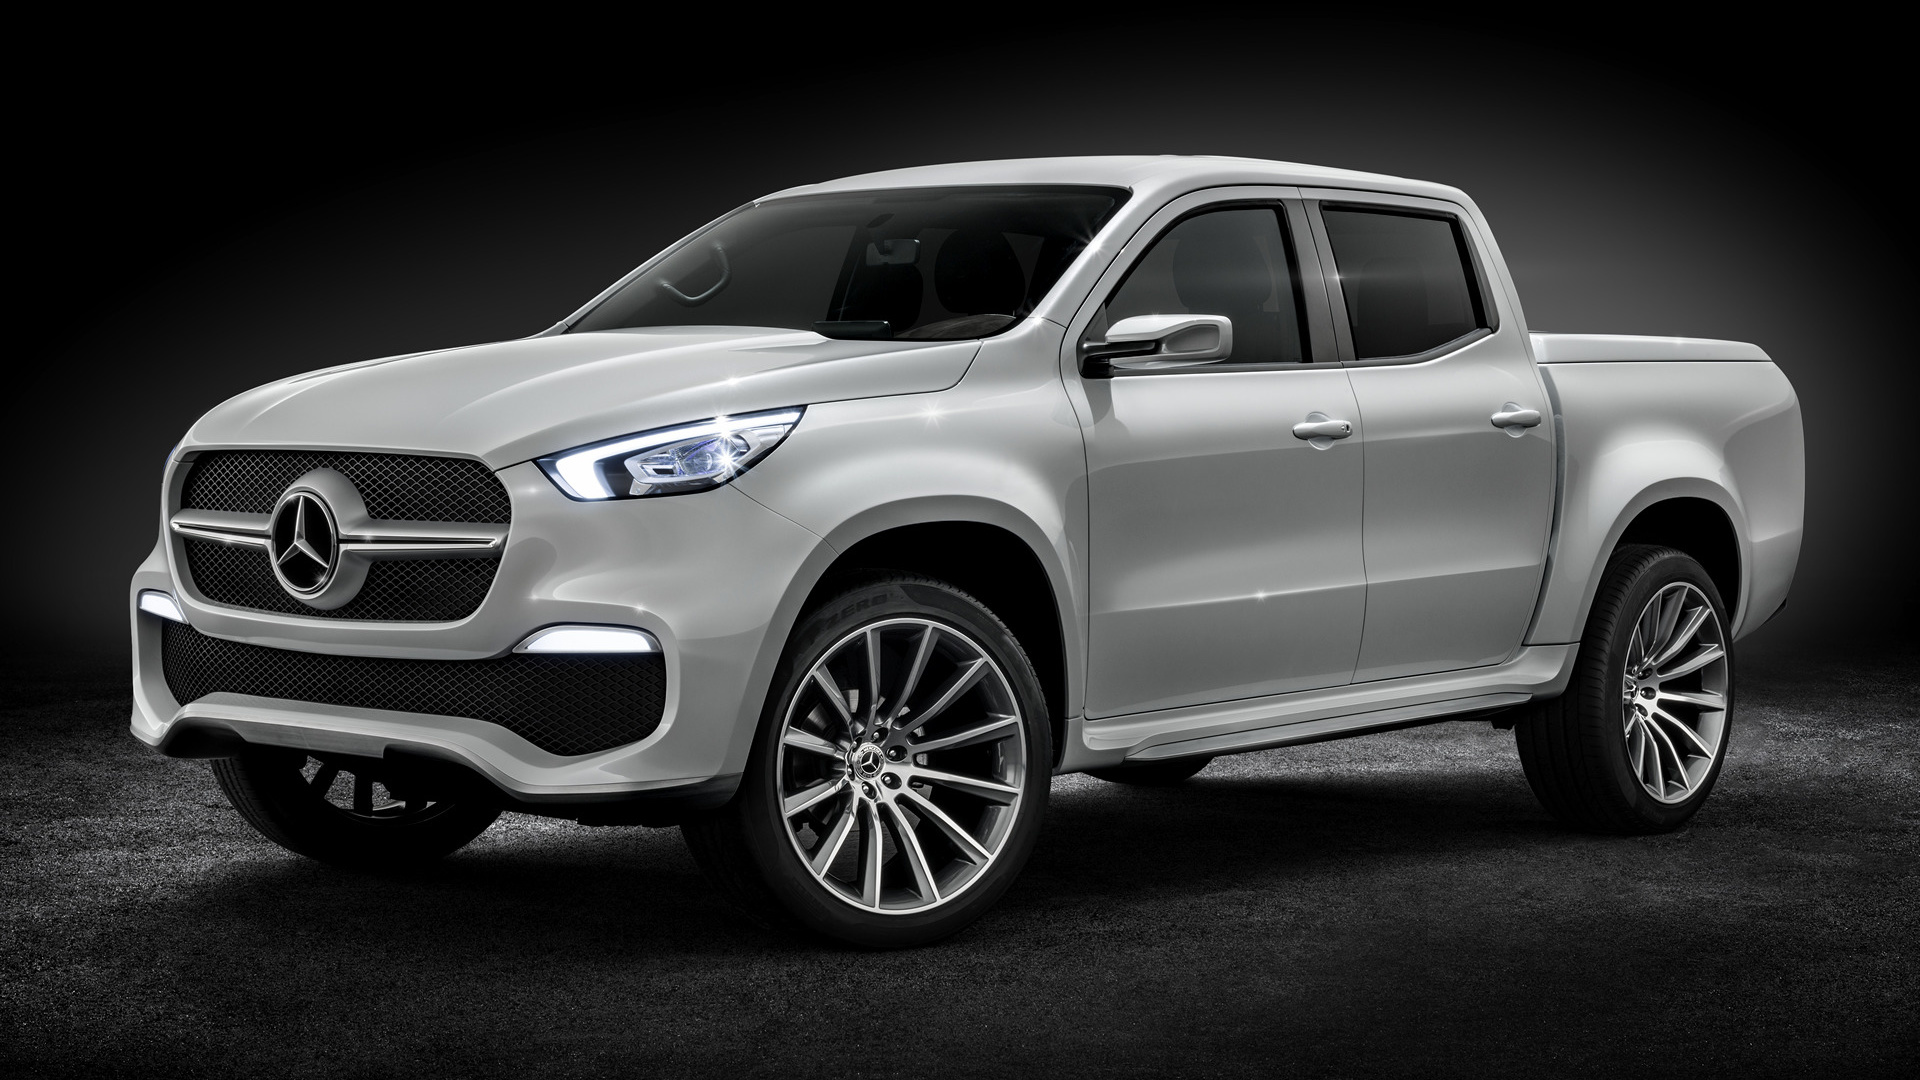 rmeo_2016 Mercedes-Benz Concept X-Class Stylish Explorer - Wallpapers and HD Images | Car Pixel